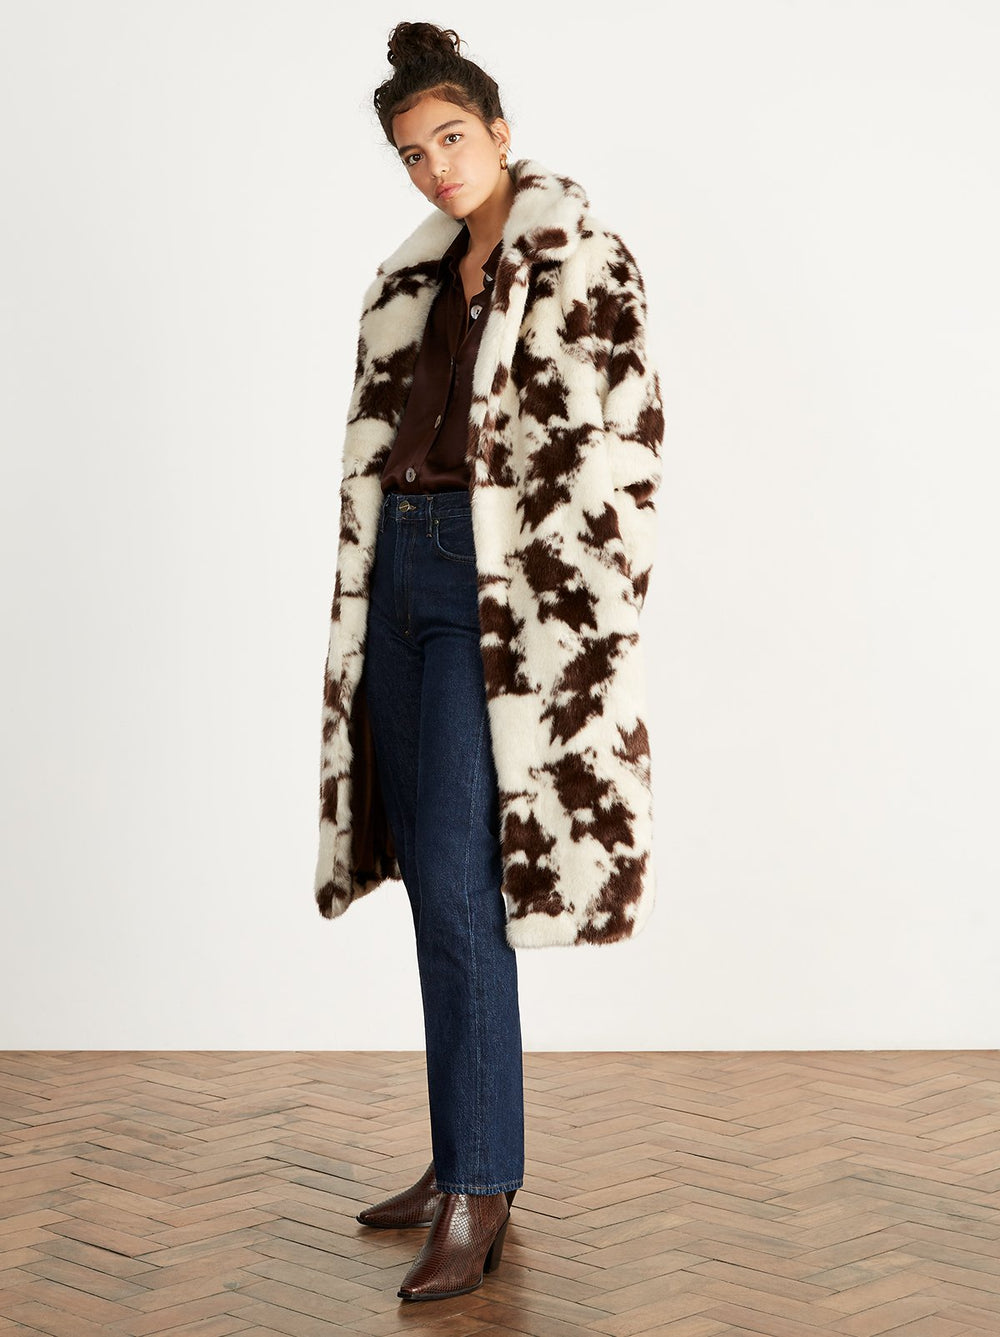 Olivia Cow Print Faux Fur Coat by KITRI Studio